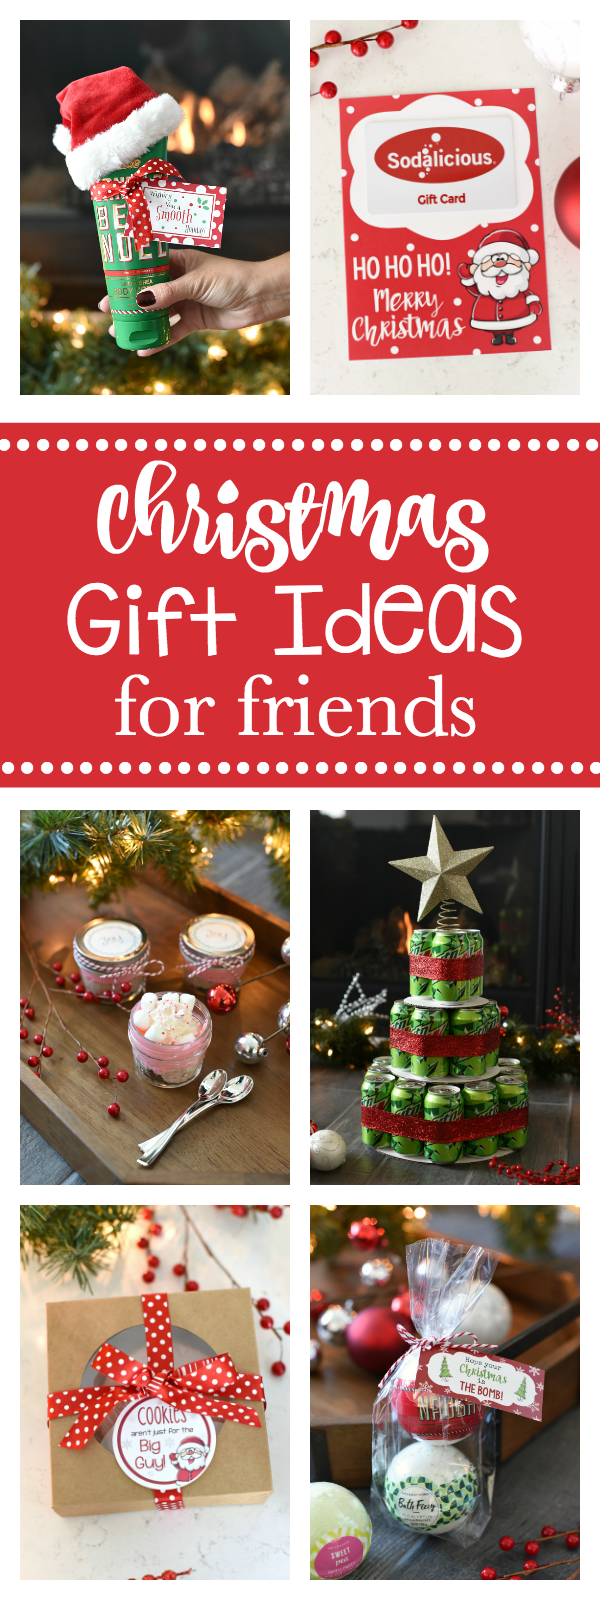 Good Gifts For Friends At Christmas Fun Squared